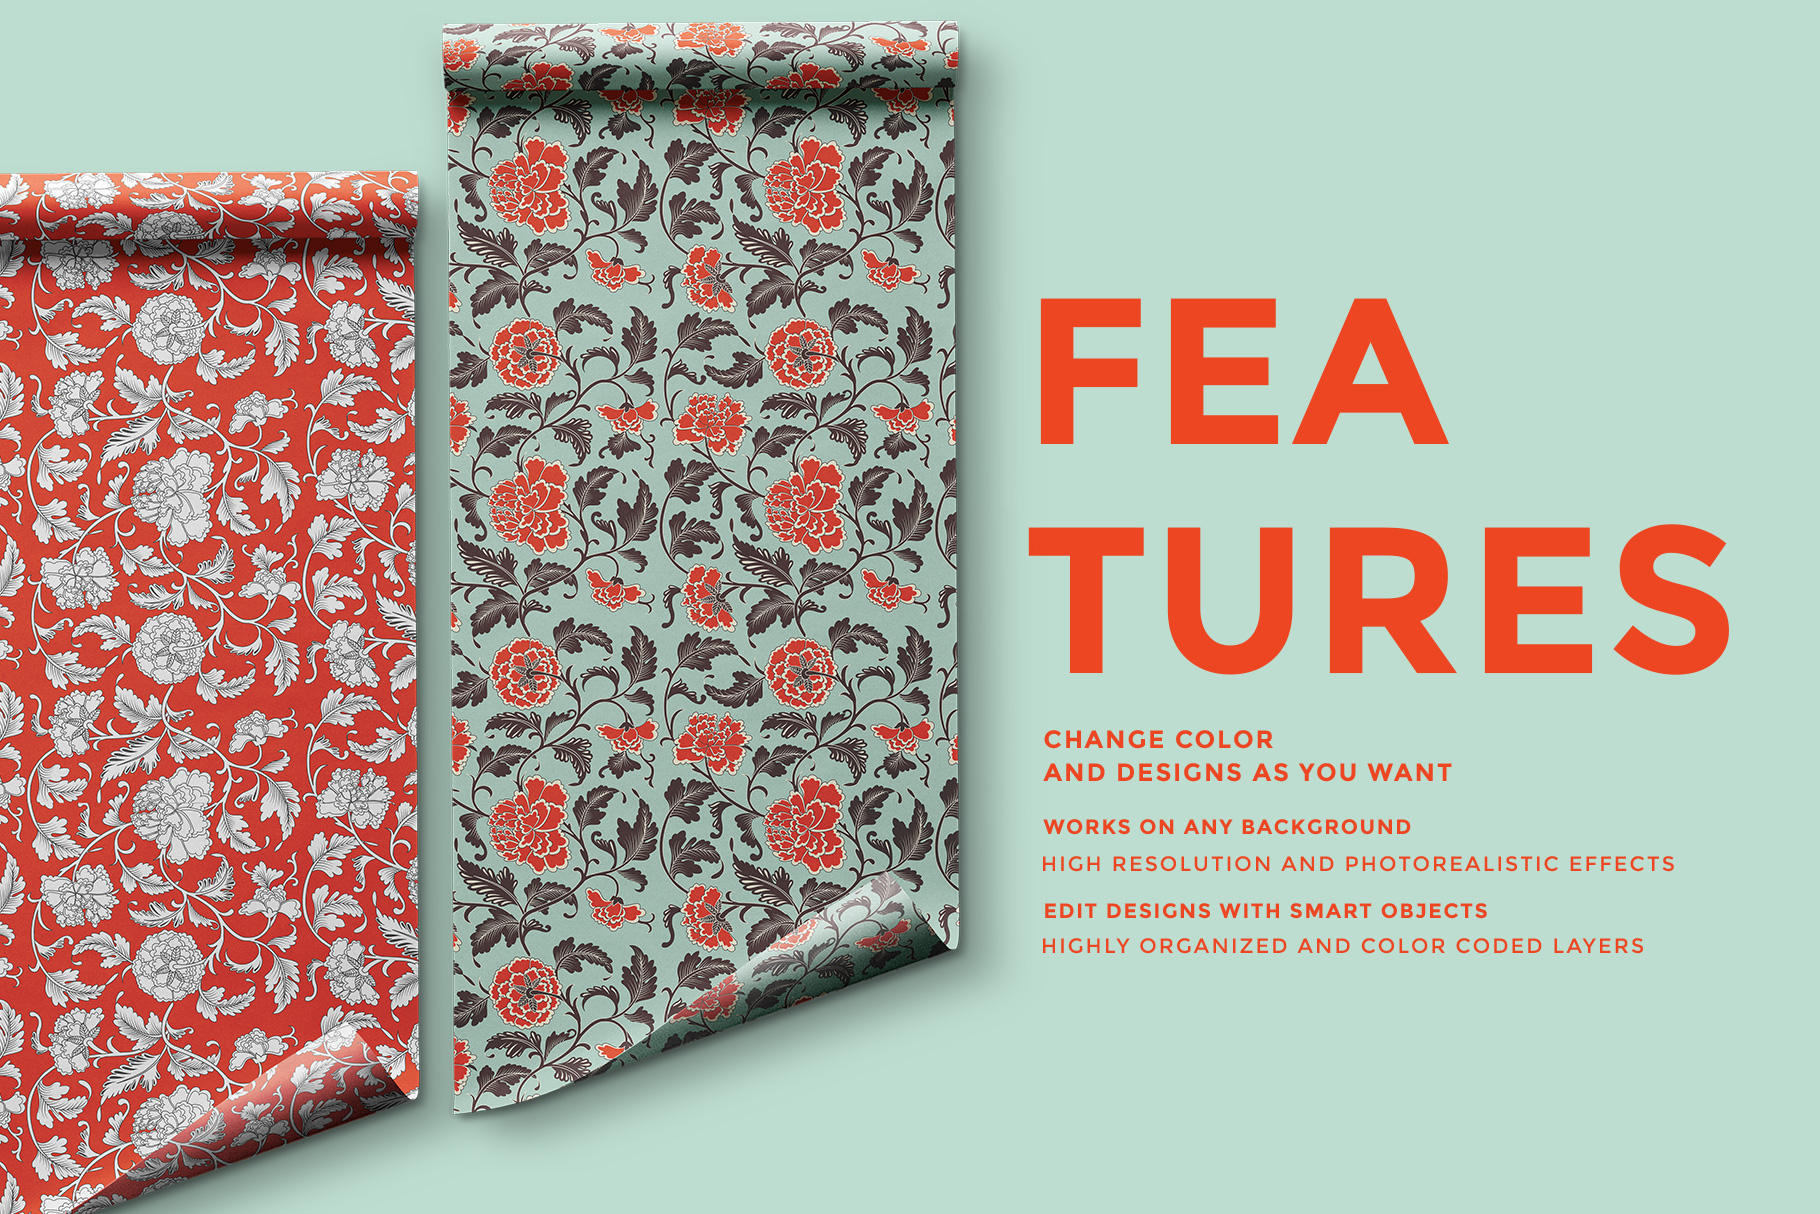 features of the top view wrapping paper roll mockup